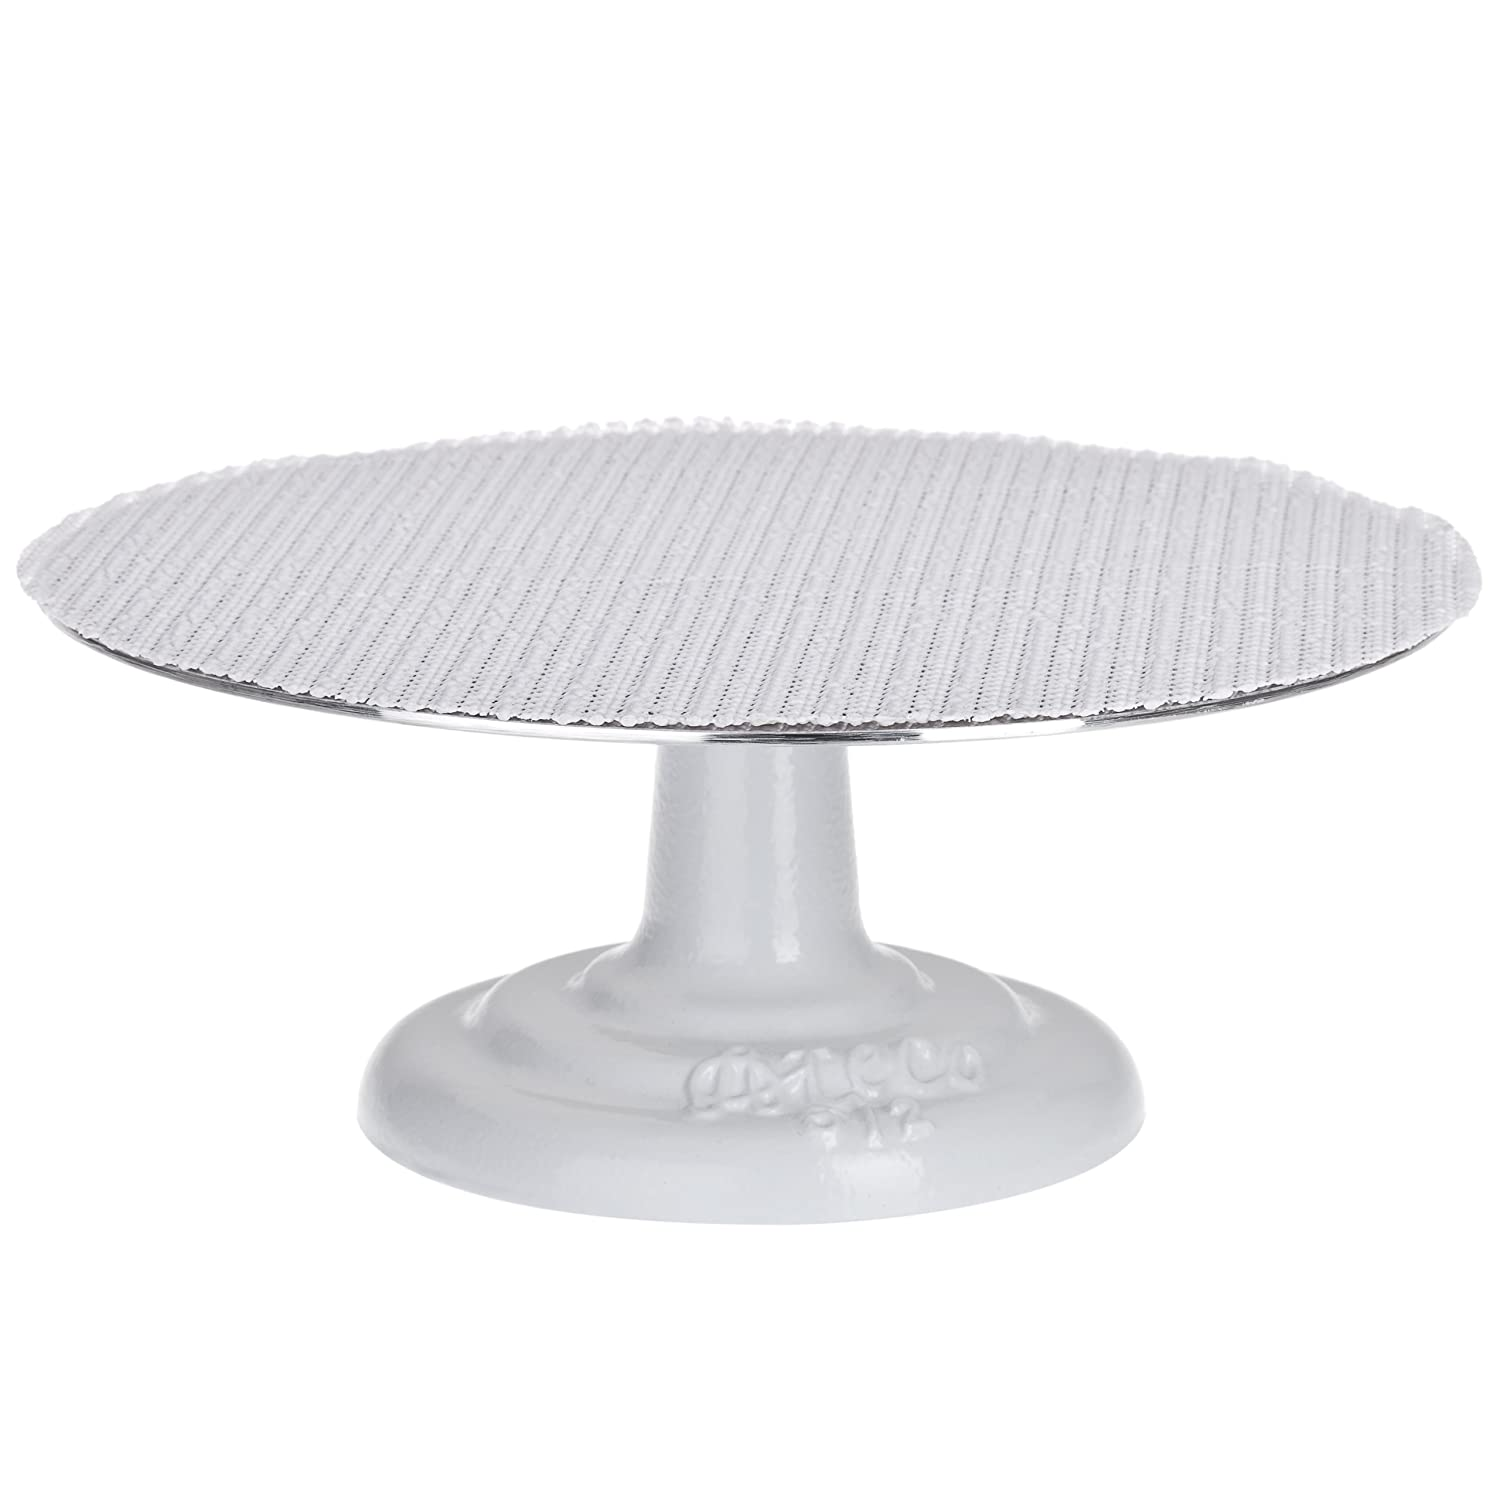 "Ateco 612 Revolving Cake Decorating Stand, 12"" Round, Cast Iron Base with 1/8"" Aluminum Top"